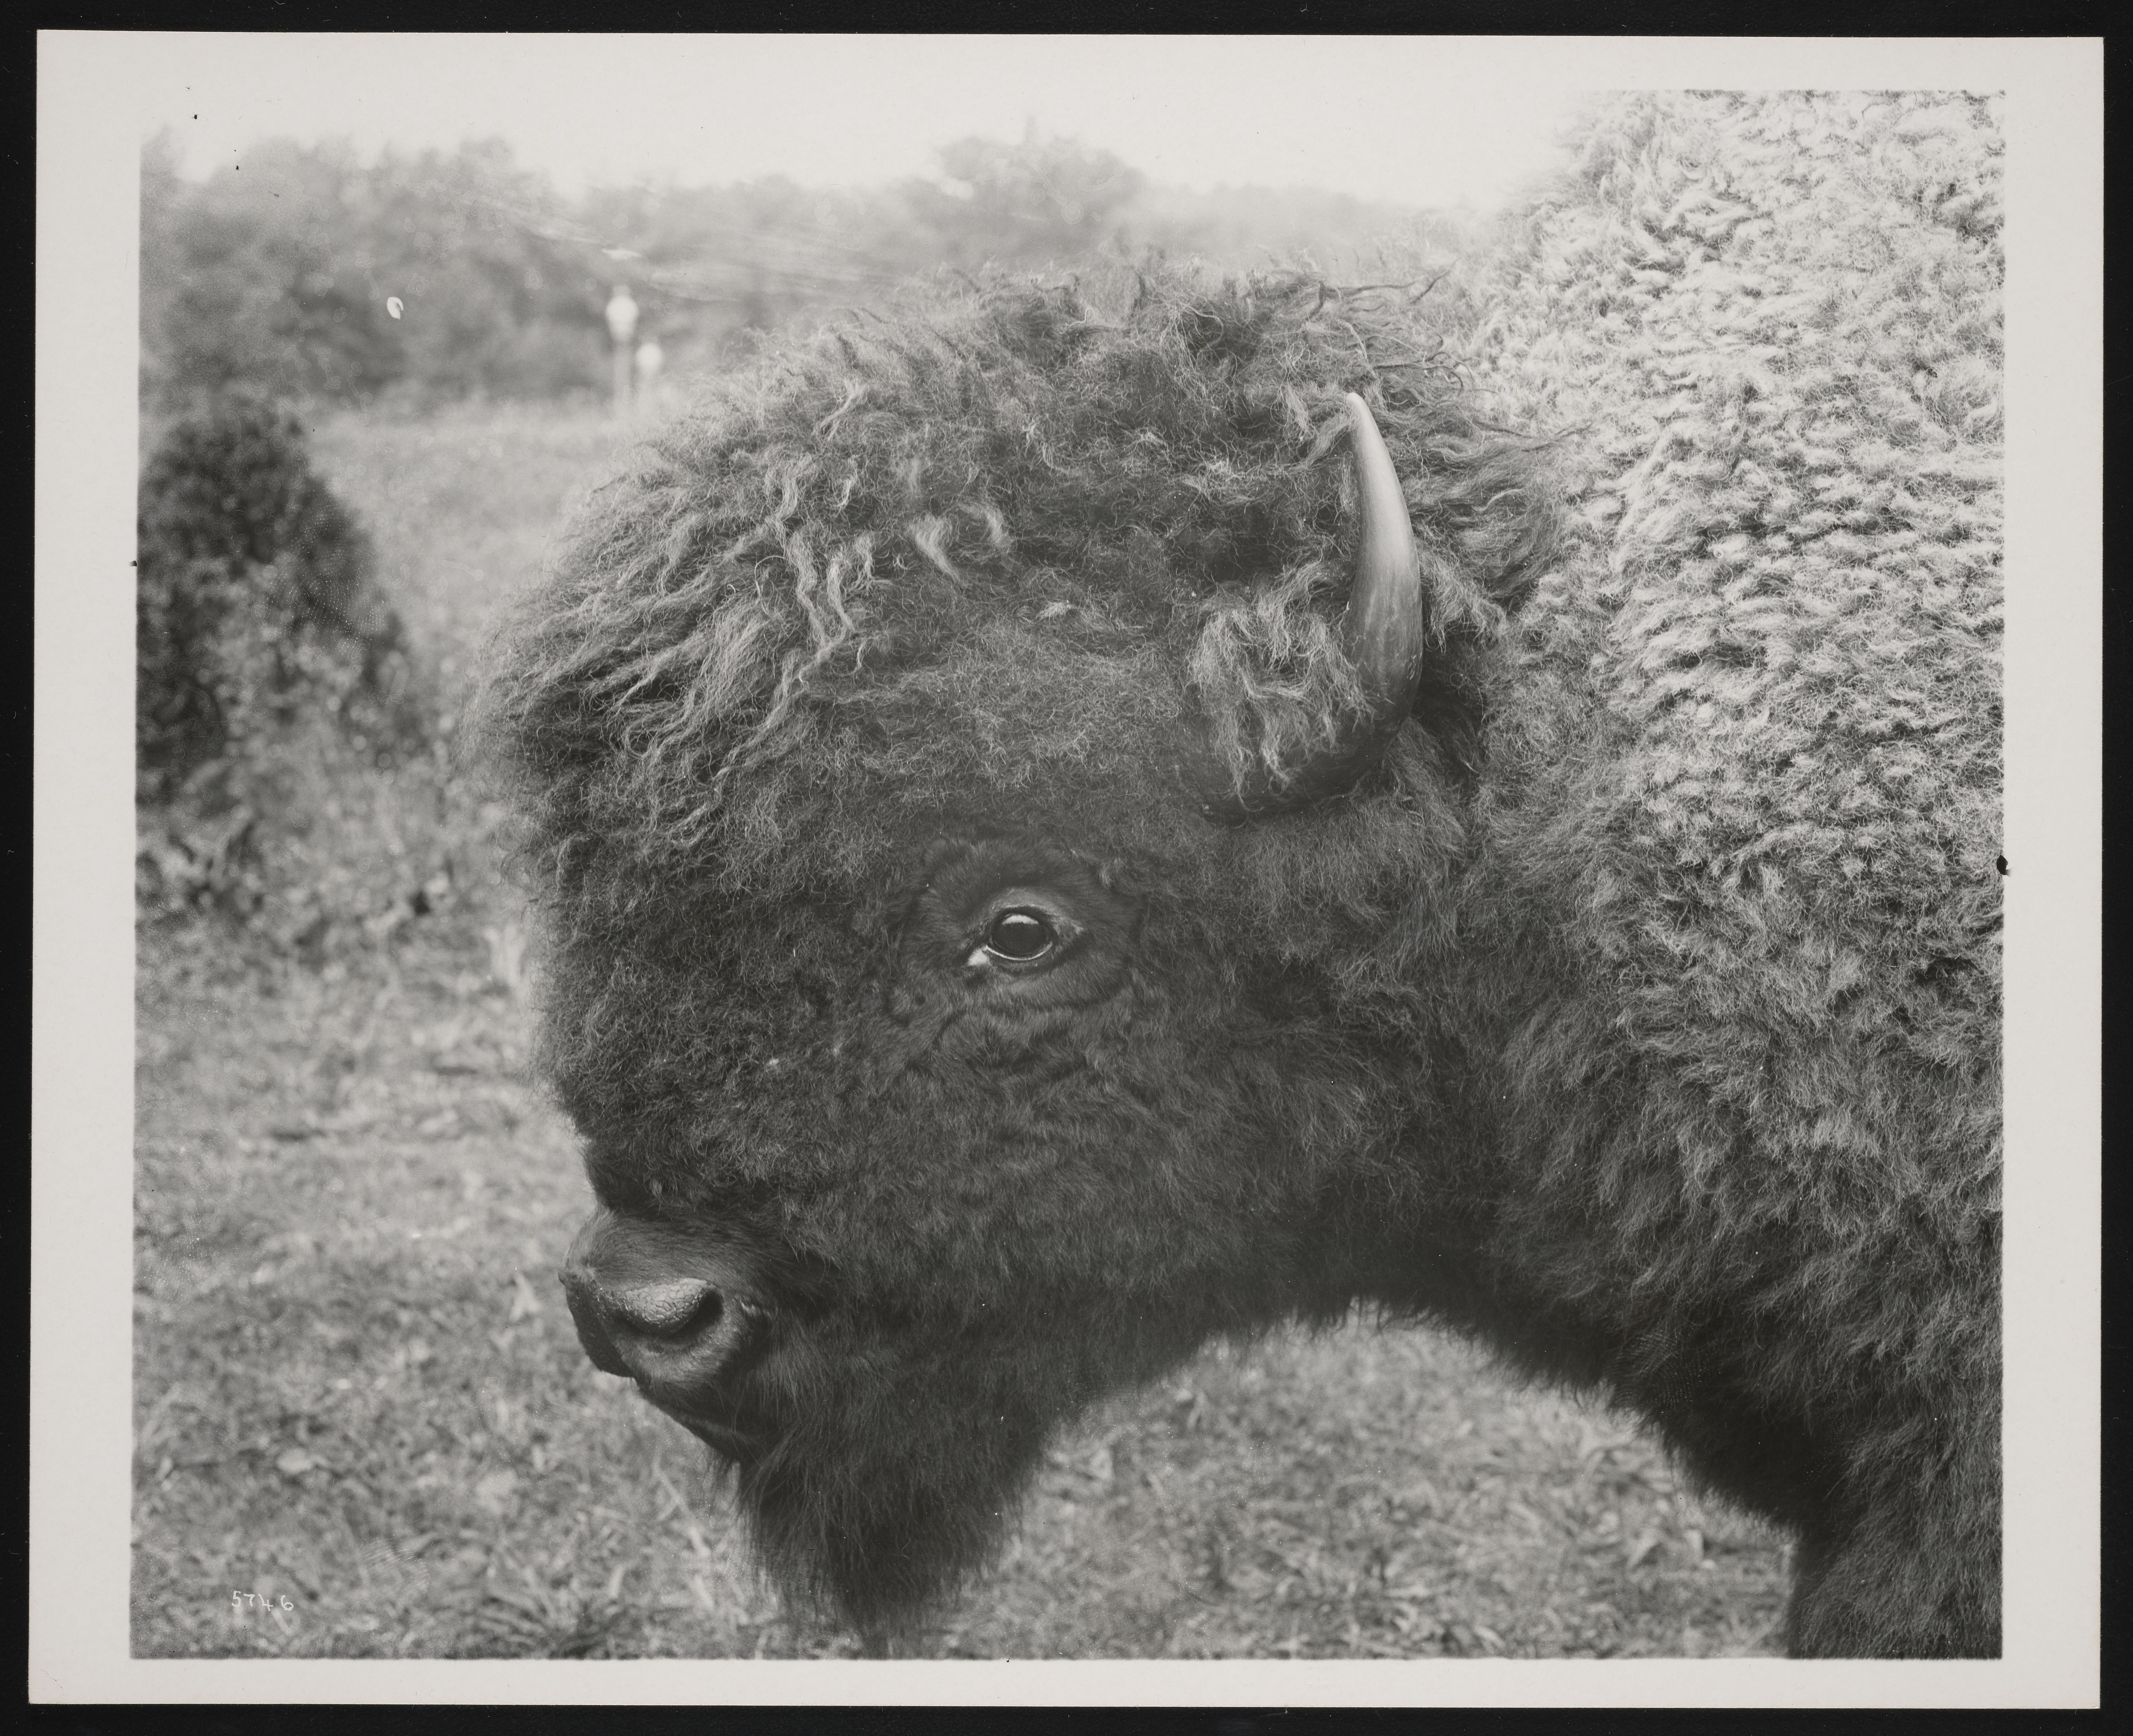 National Zoological Park, American Bison